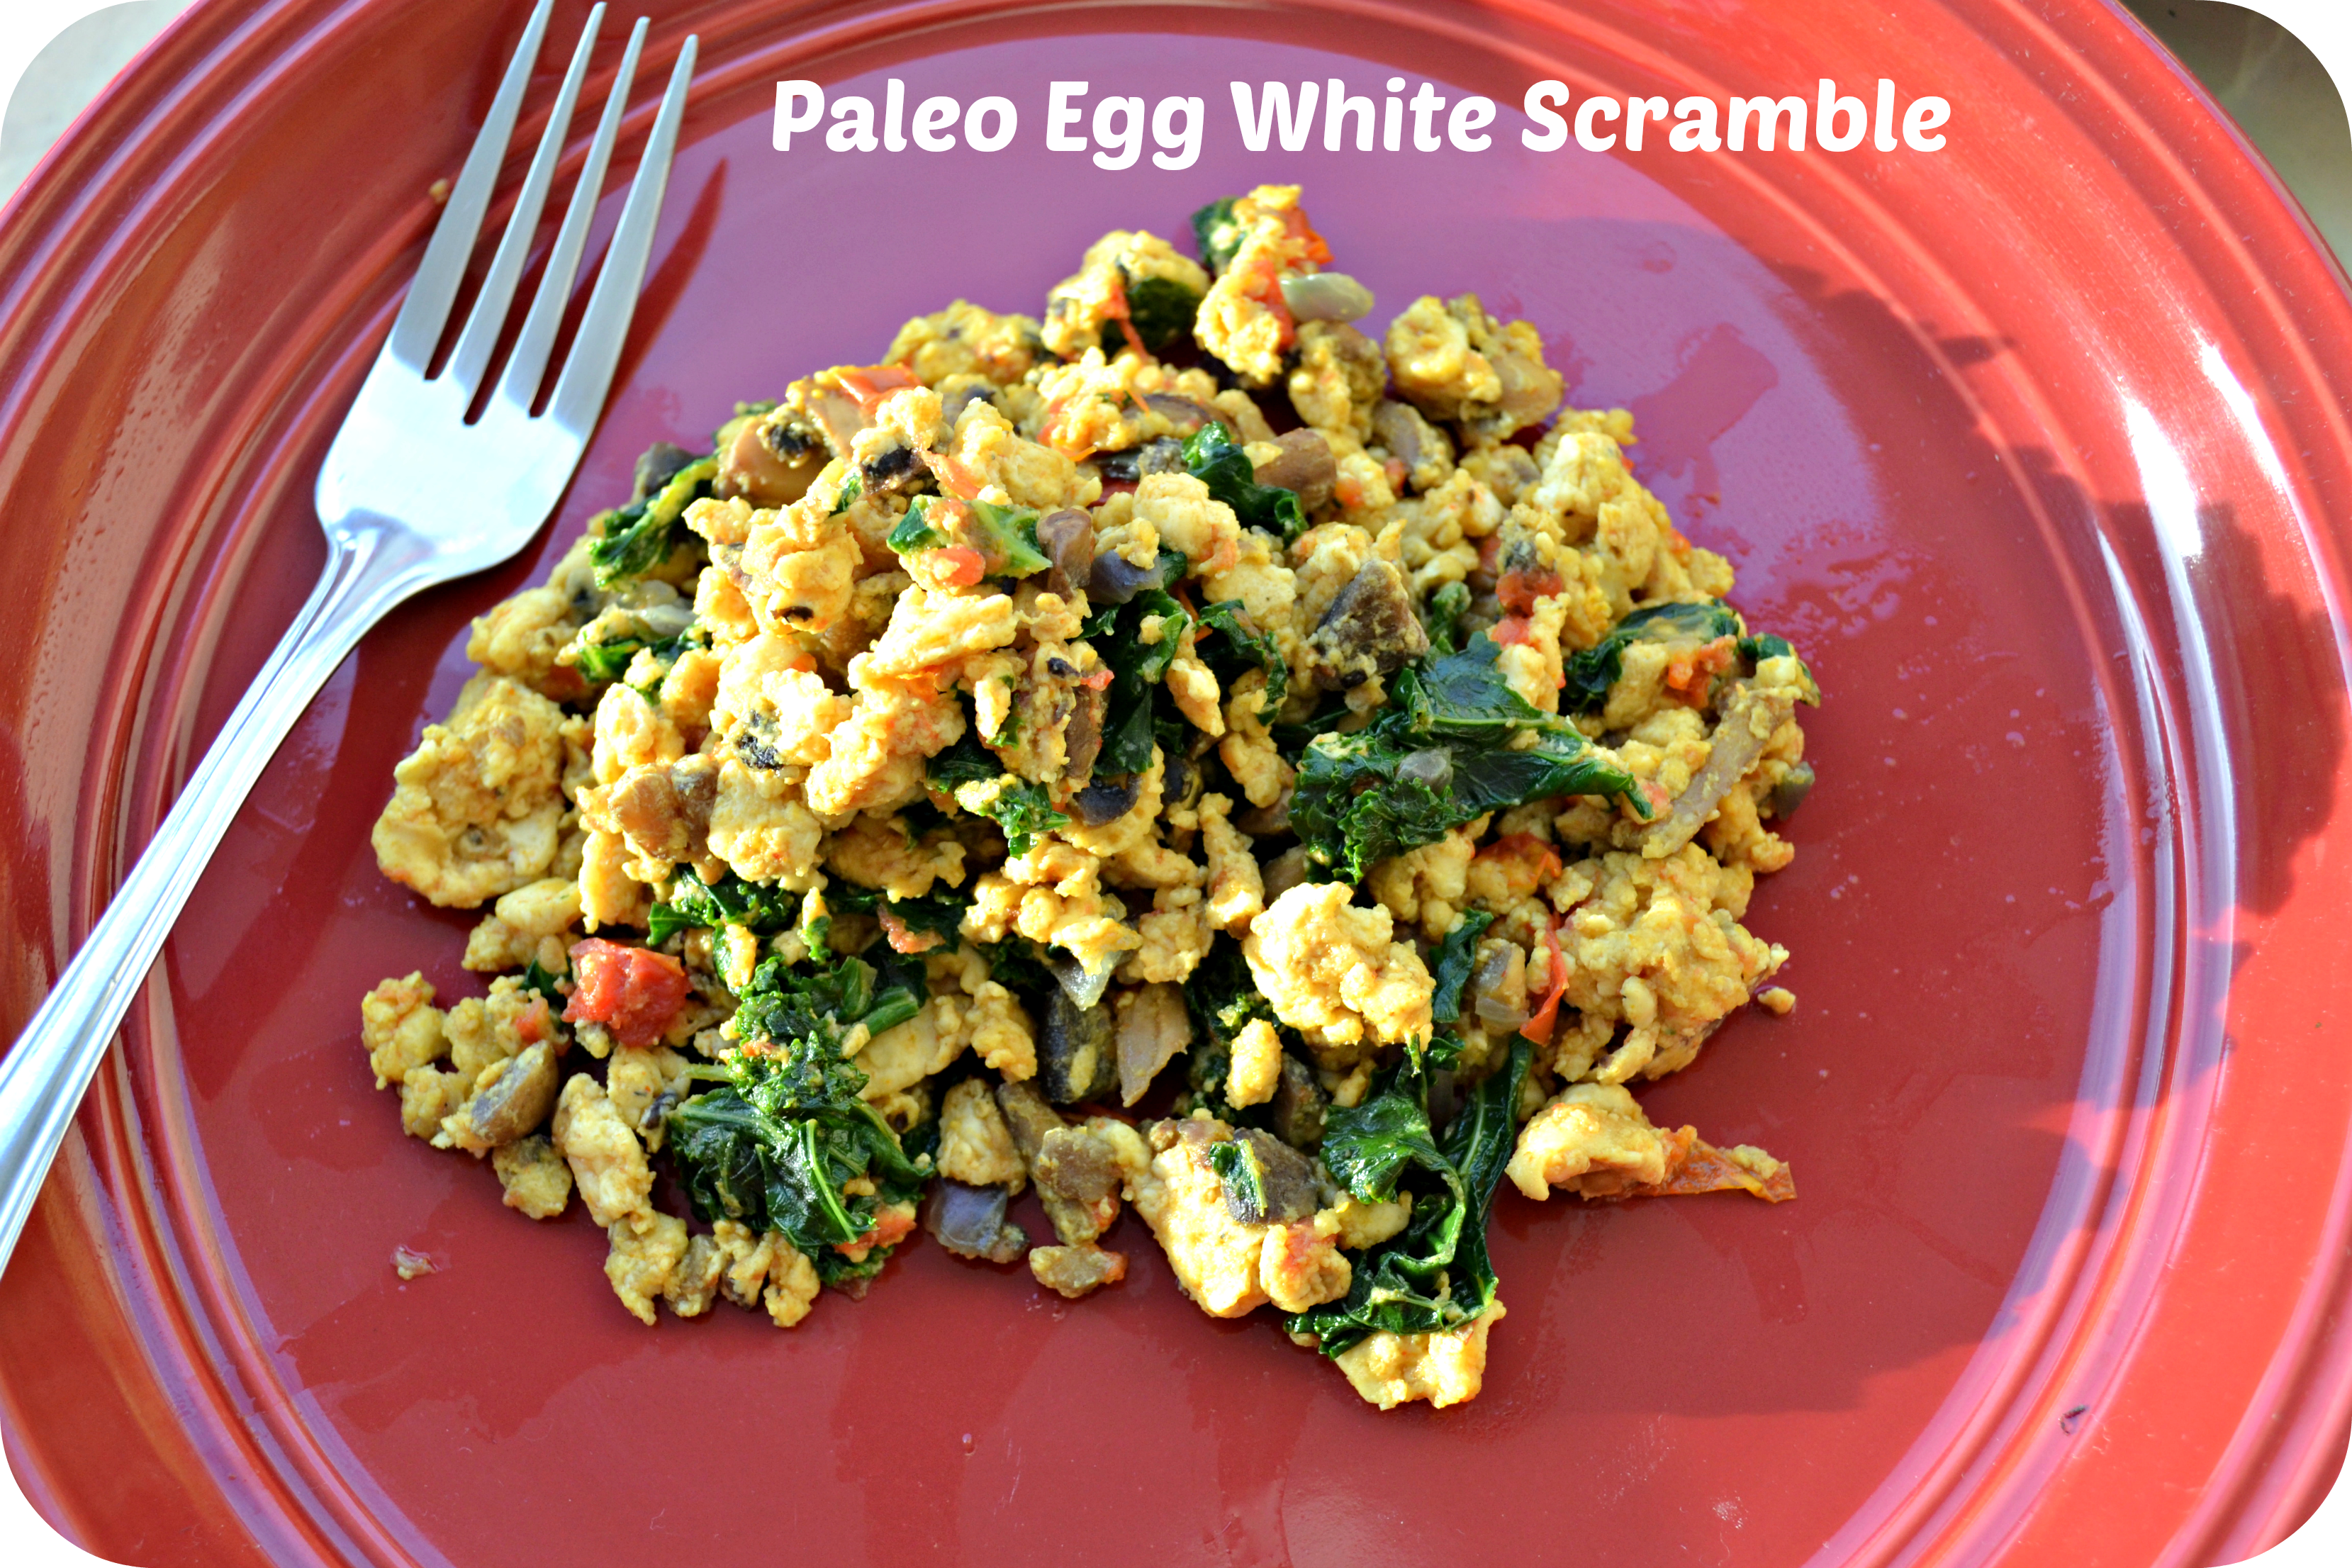 Paleo Egg White Scramble